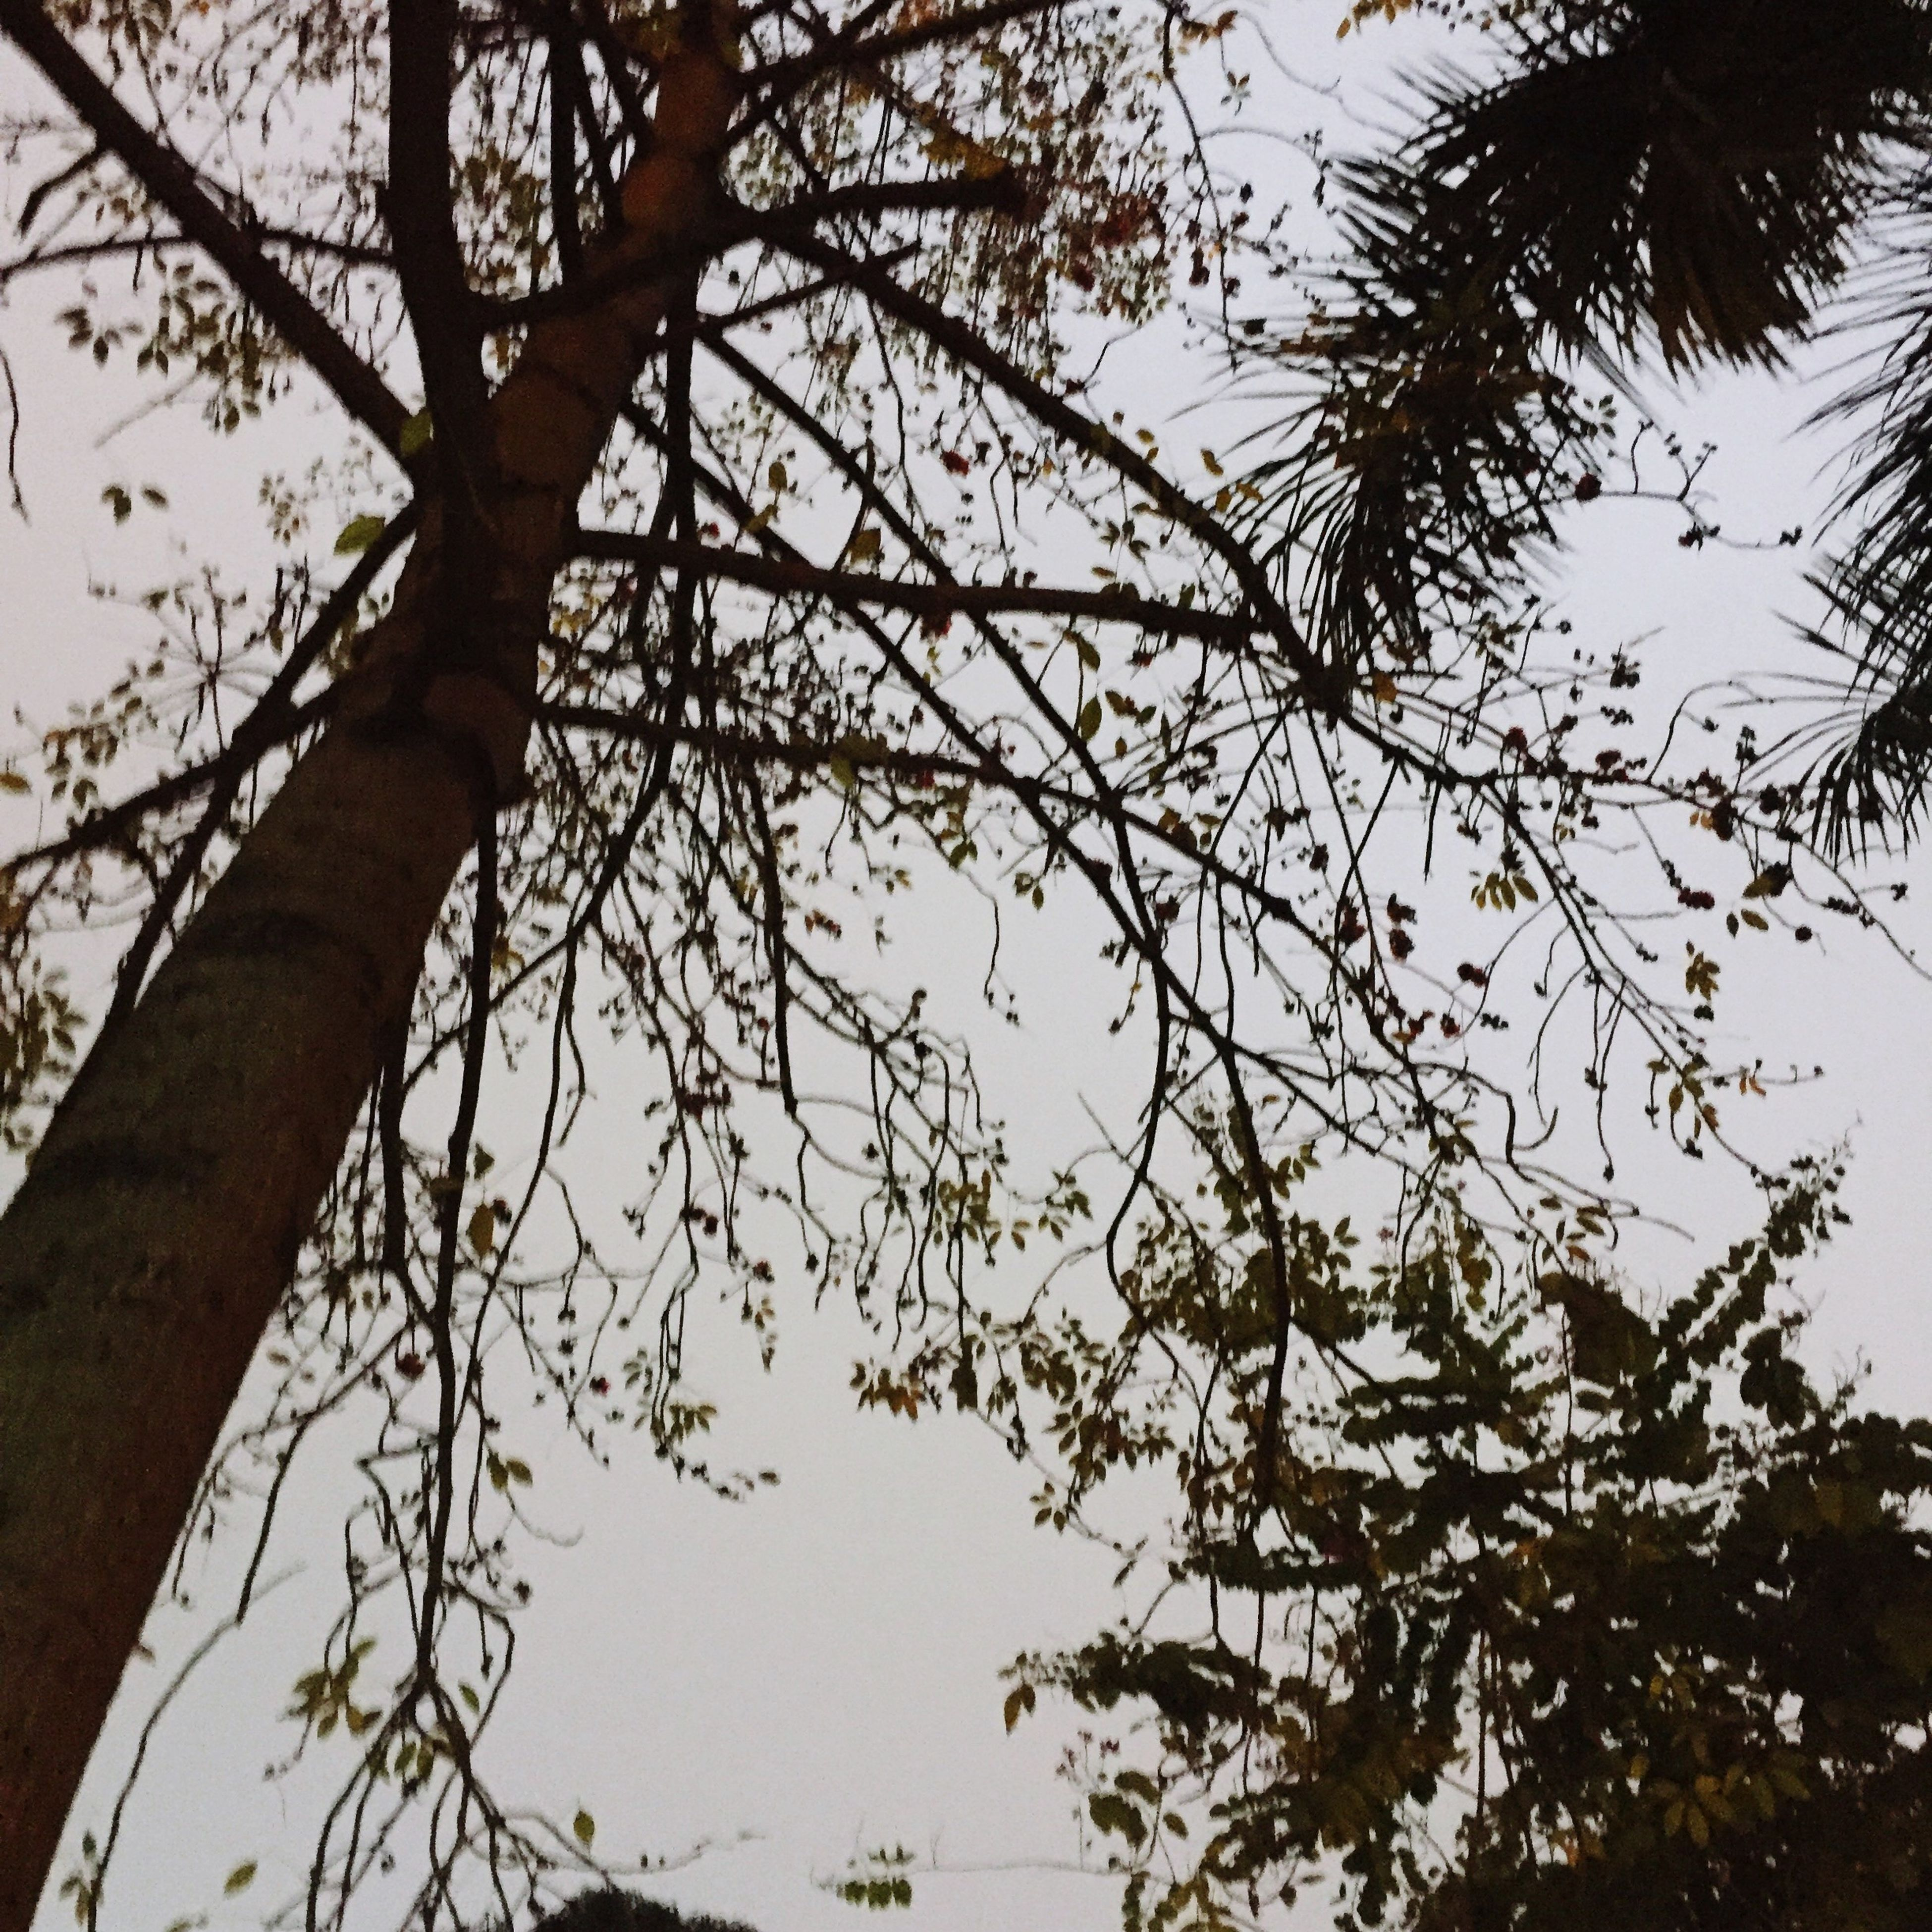 tree, low angle view, nature, sky, no people, outdoors, branch, beauty in nature, day, close-up